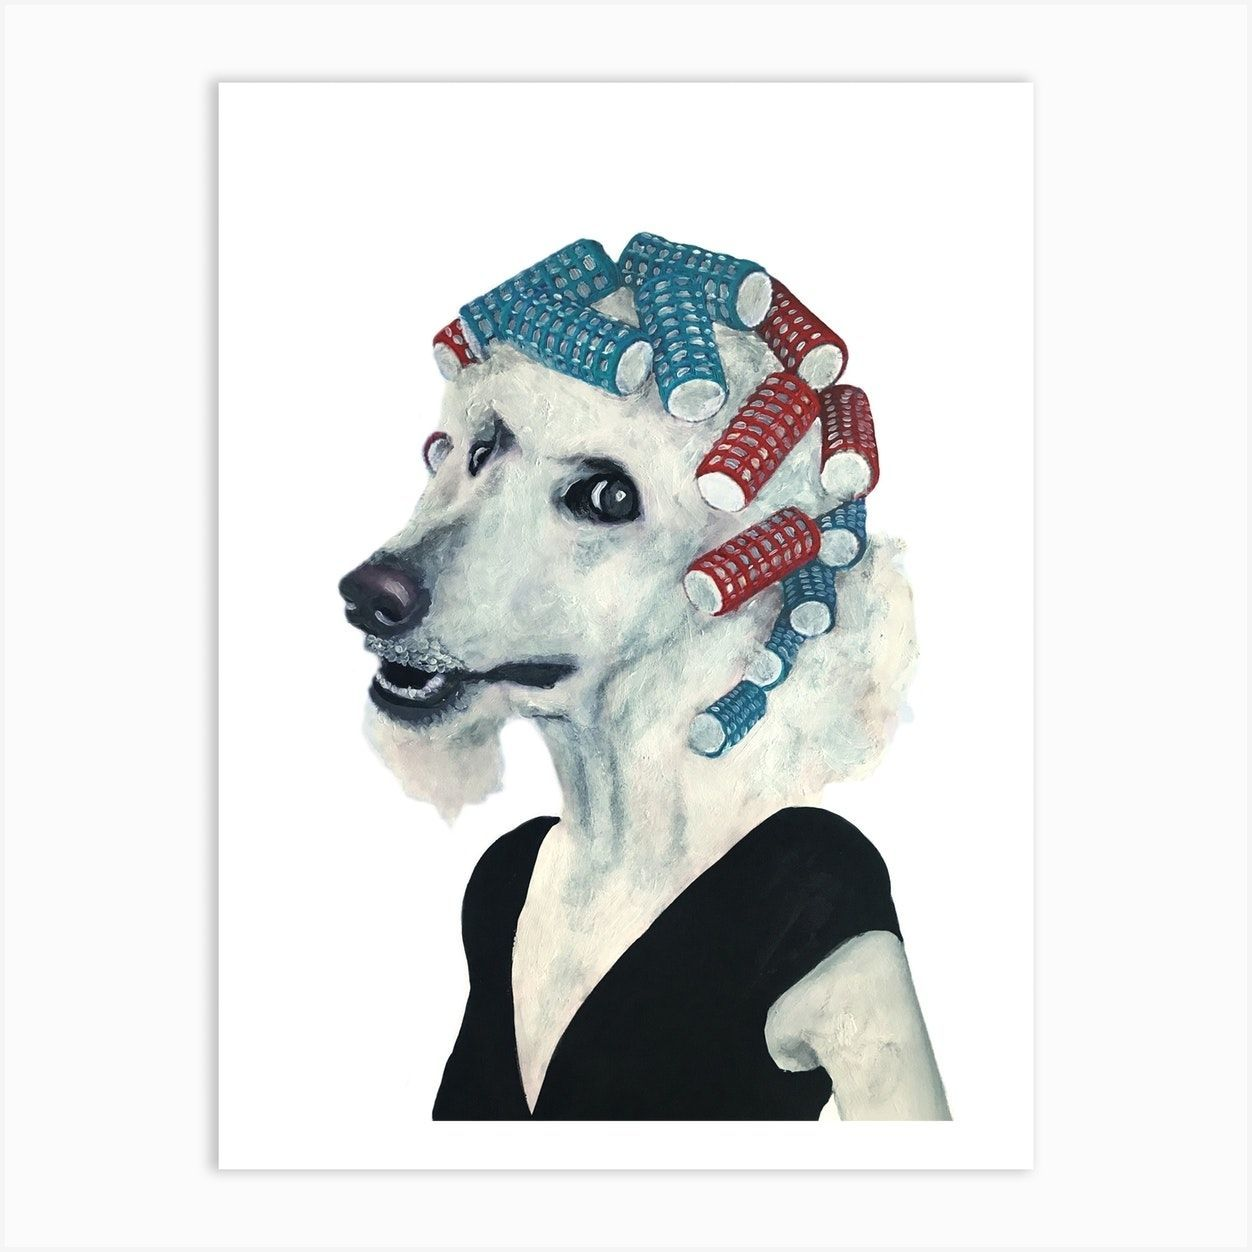 Poodle With Haircurles Art Print#art #haircurles #poodle #print